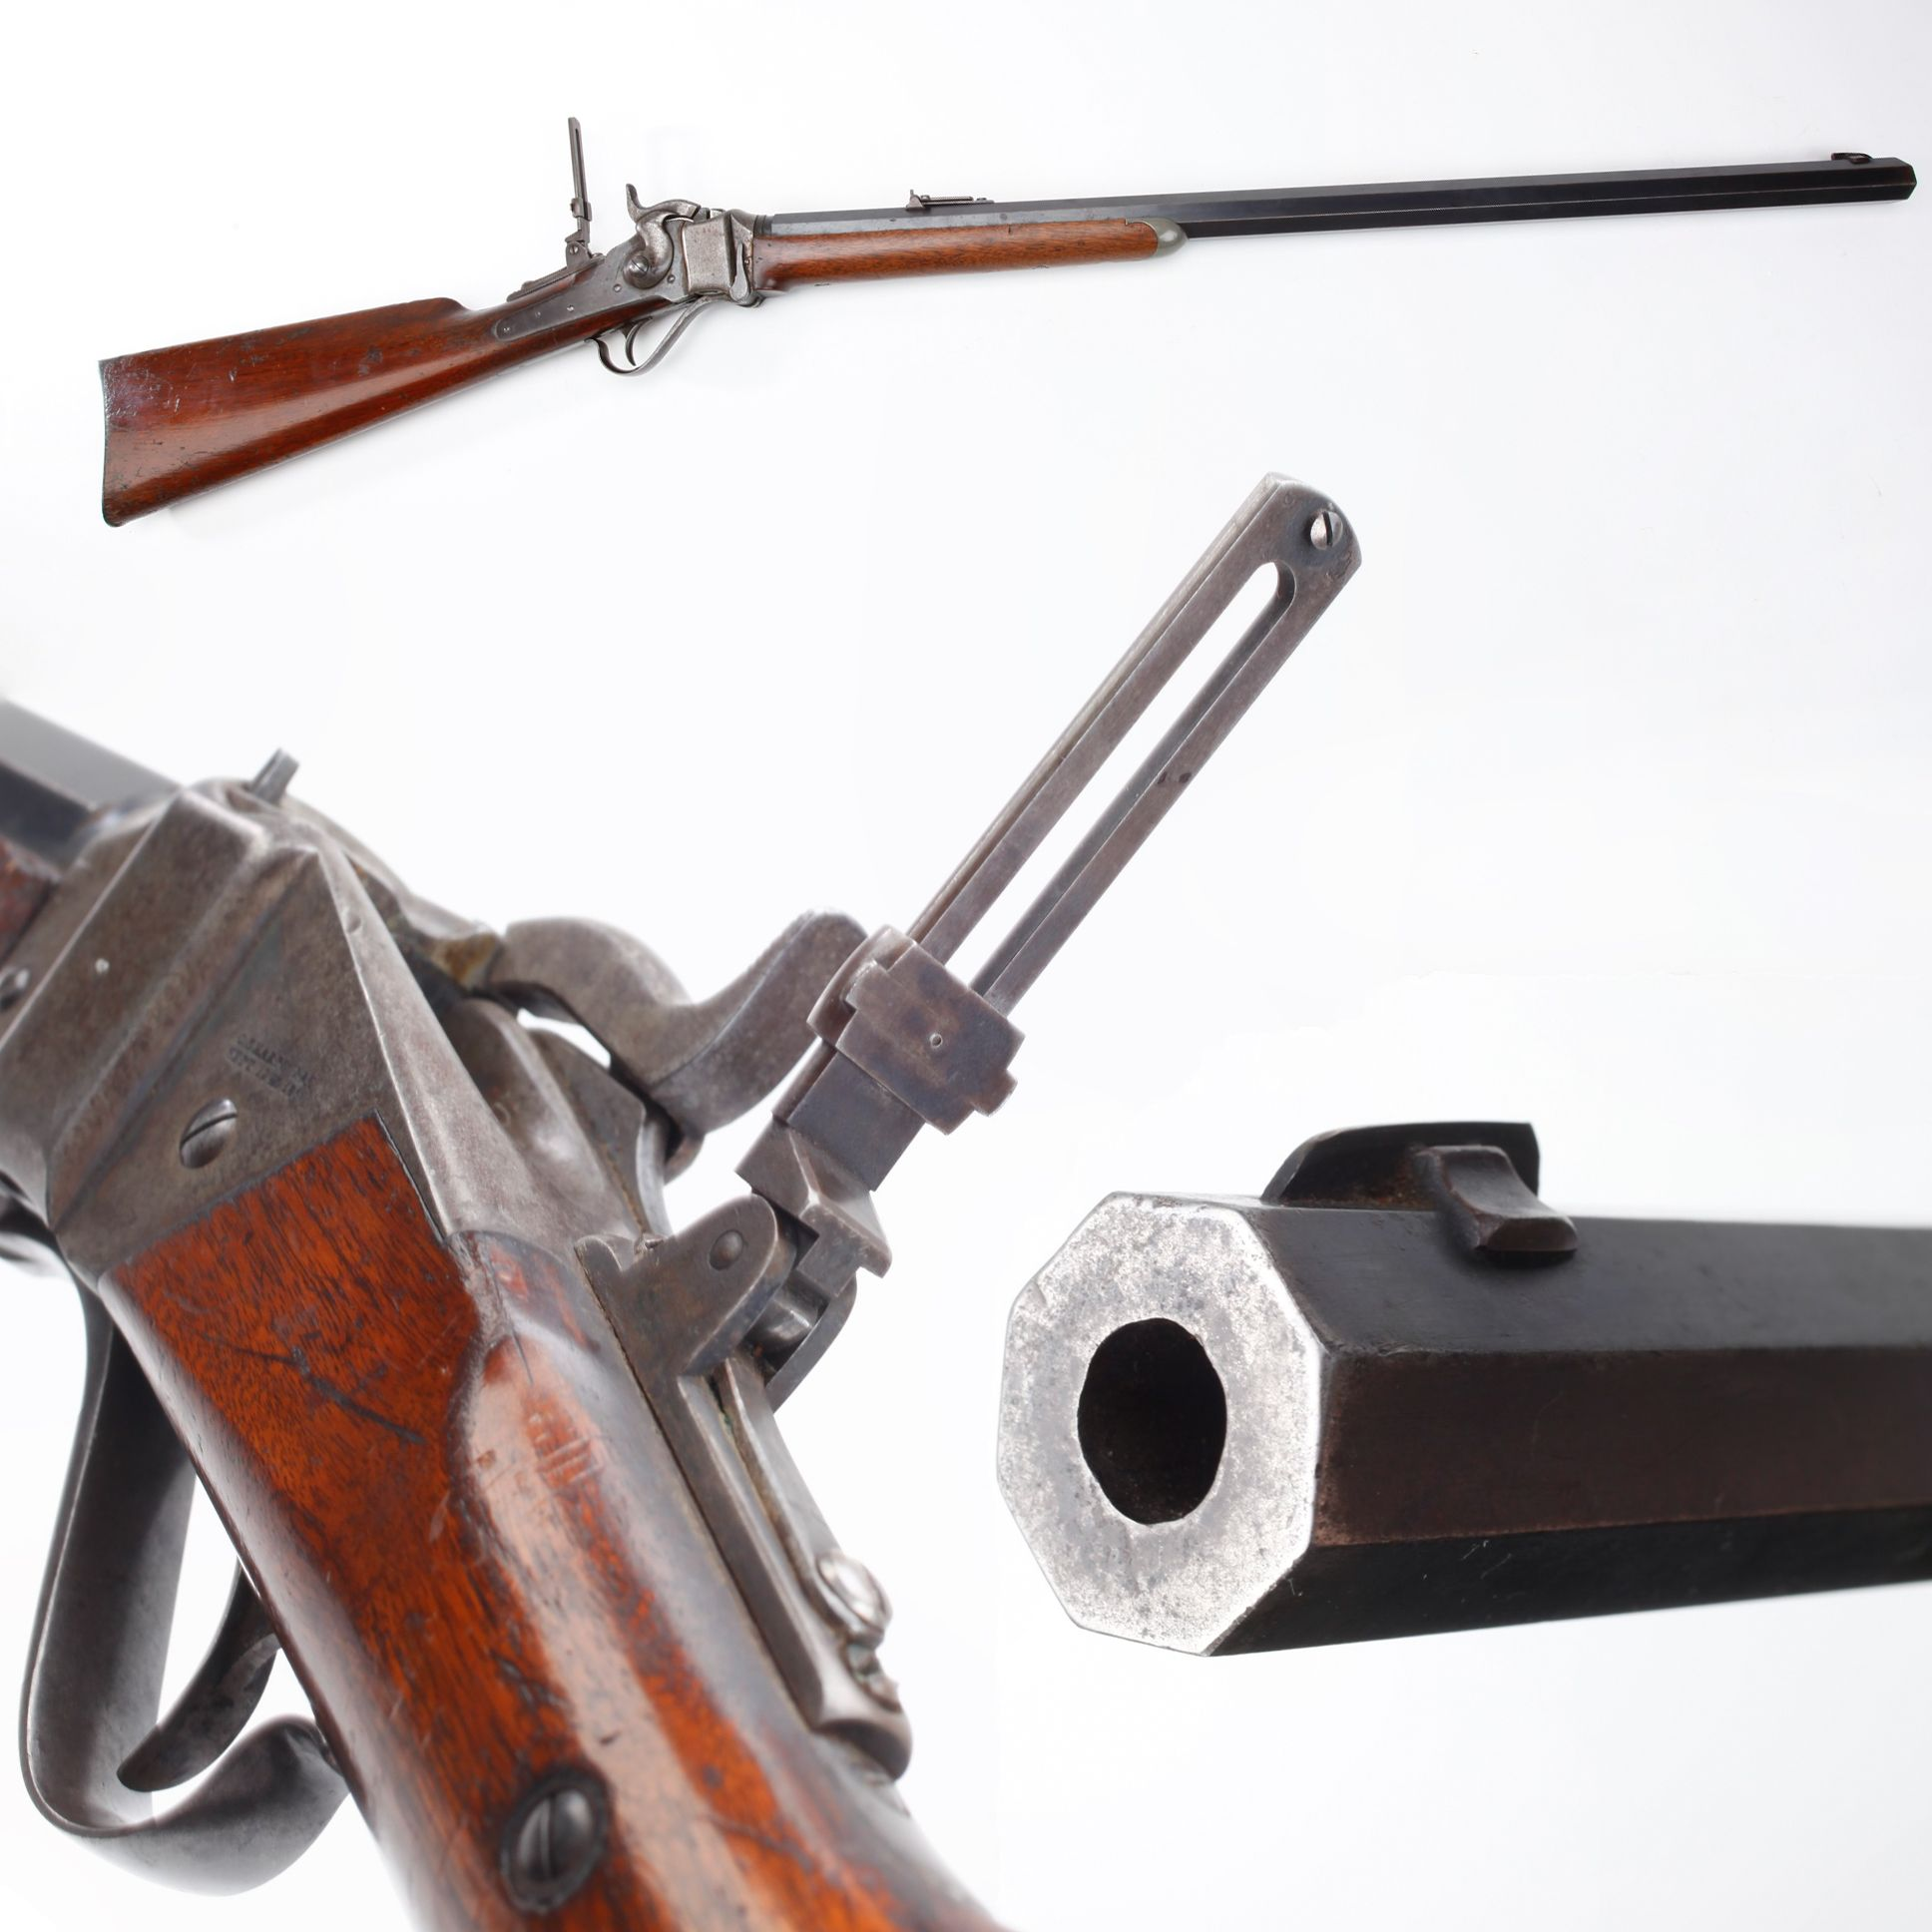 """GUN OF THE DAY – Sharps """"Big 50"""" Rifle  Discover more about this gold standard GOTD for buffalo hunting on the plains: http://bit.ly/1GbXpHc."""